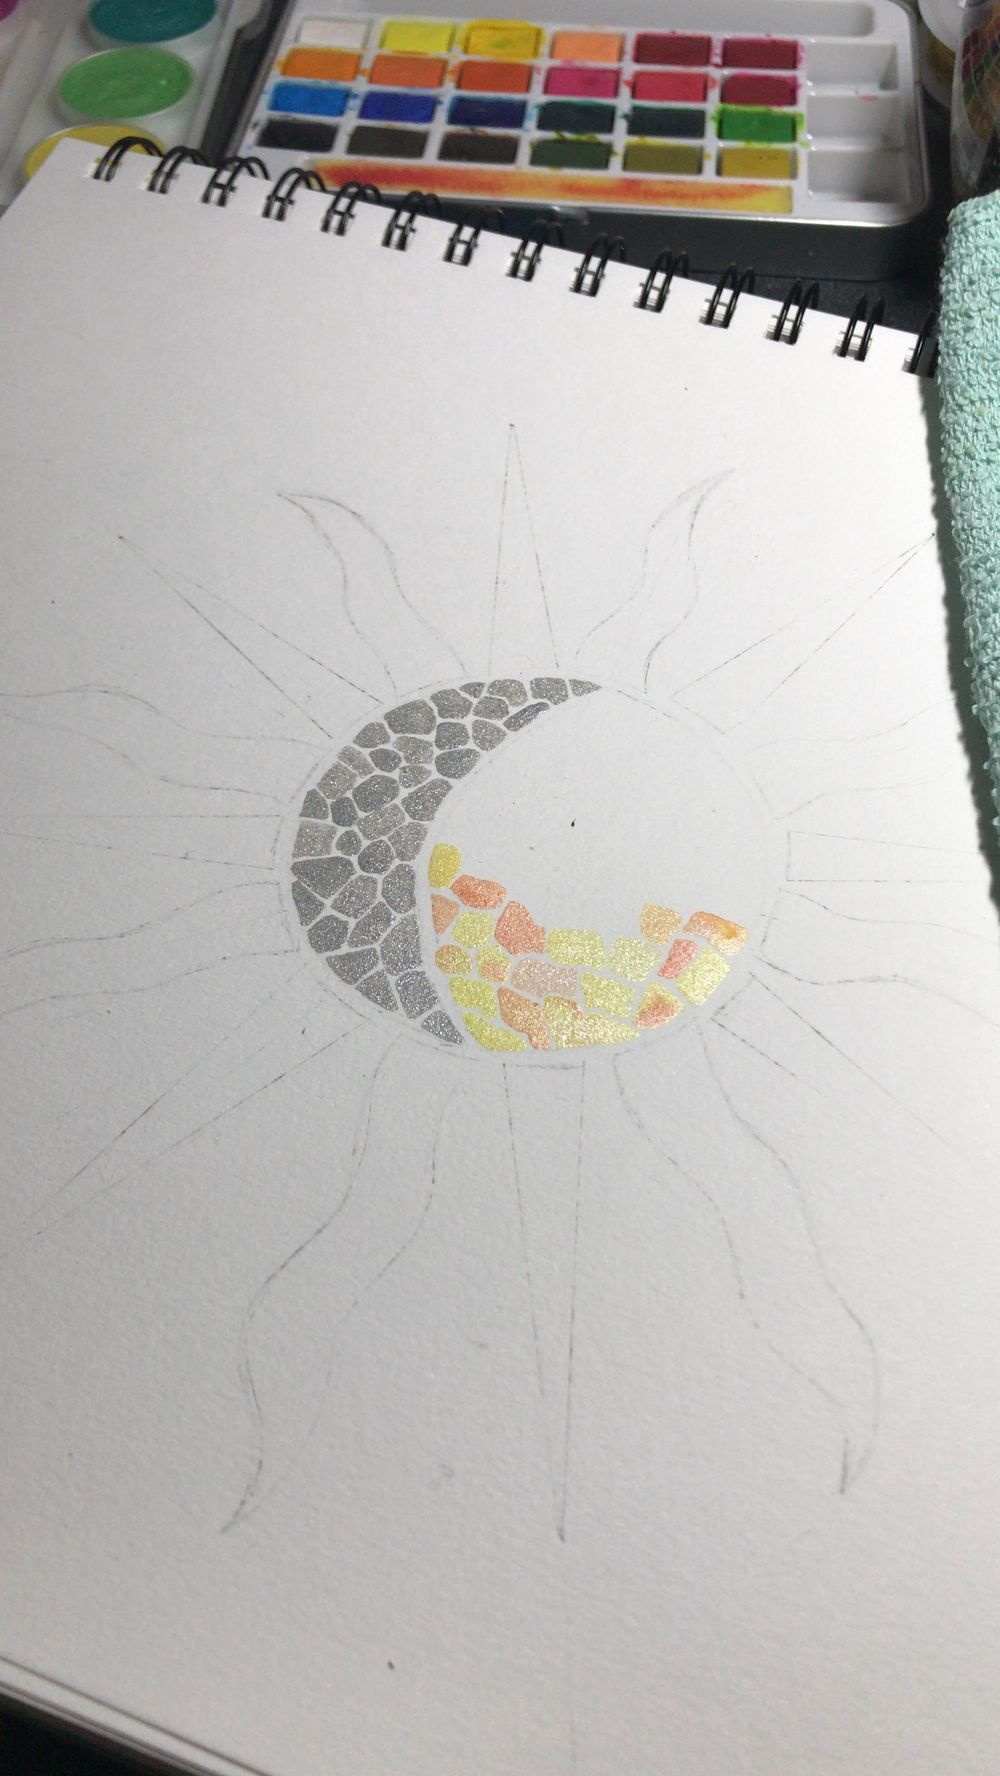 Eclipse - image 1 - student project